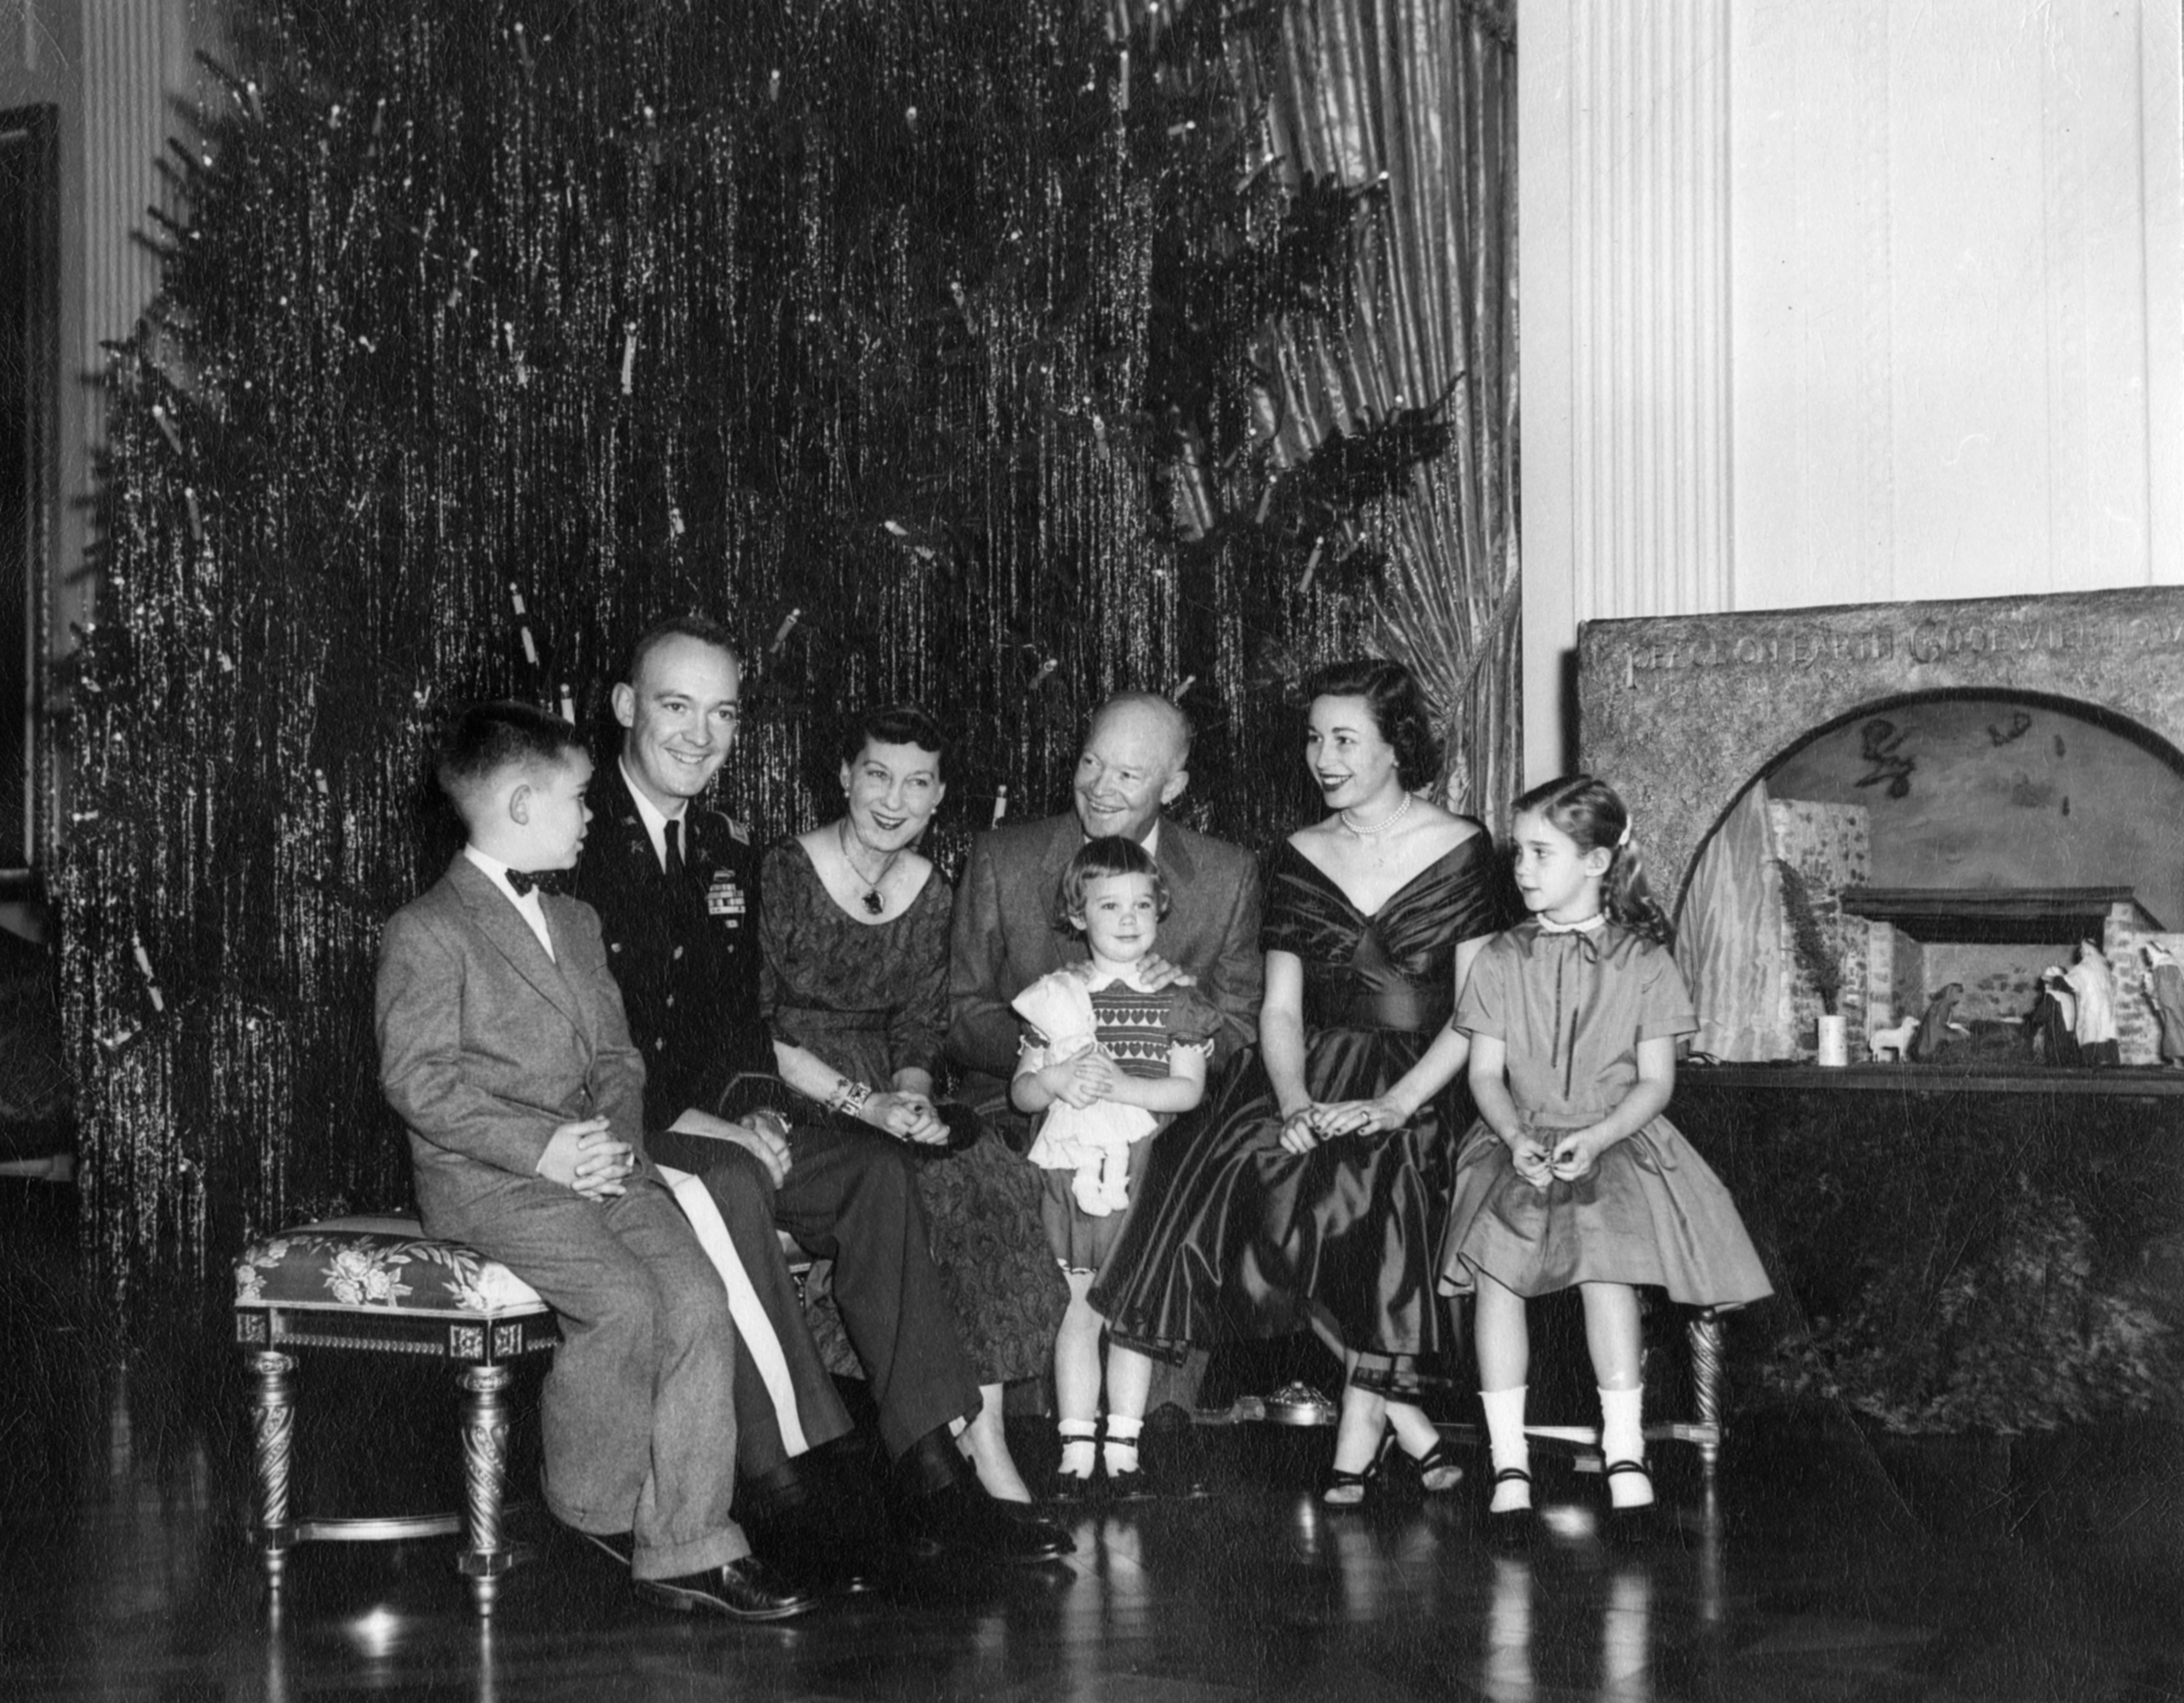 The East Room of the White House at Christmas time. In 1954 Raymond and Mildred Pitcairn commissioned Winfred S. Hyatt to make a Nativity scene for President and Mrs. Eisenhower. The scene was displayed in the East Room of the White House that same year. Two more scenes were added in 1957, when all three were displayed together next to the Christmas tree. Photo courtesy of the National Park Service (Abbie Rowe).